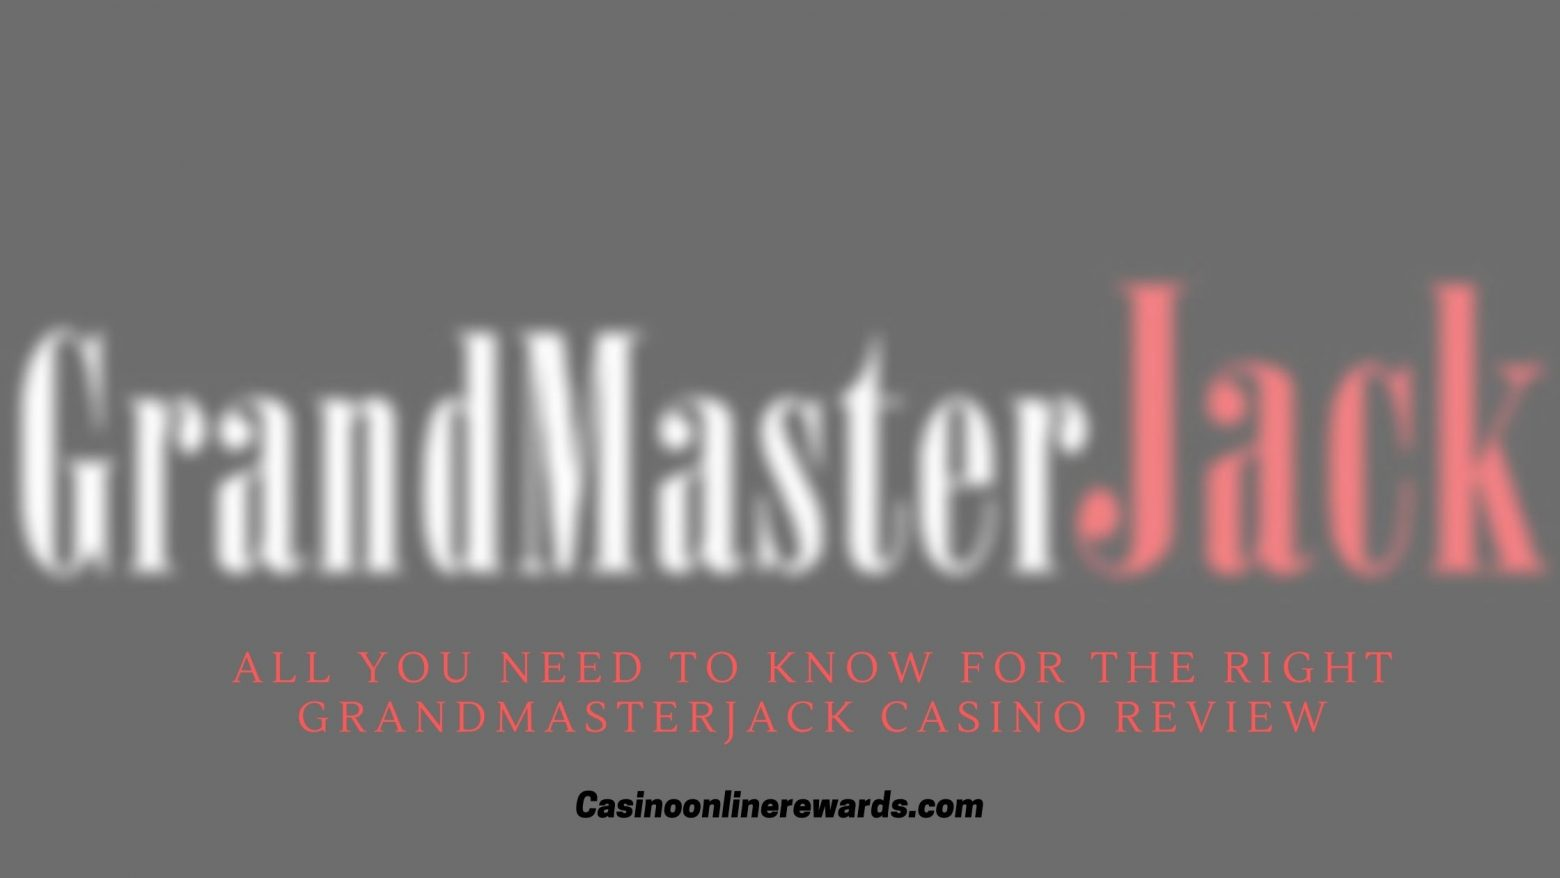 All you Need to Know For the Right GRANDMASTER JACK casino review